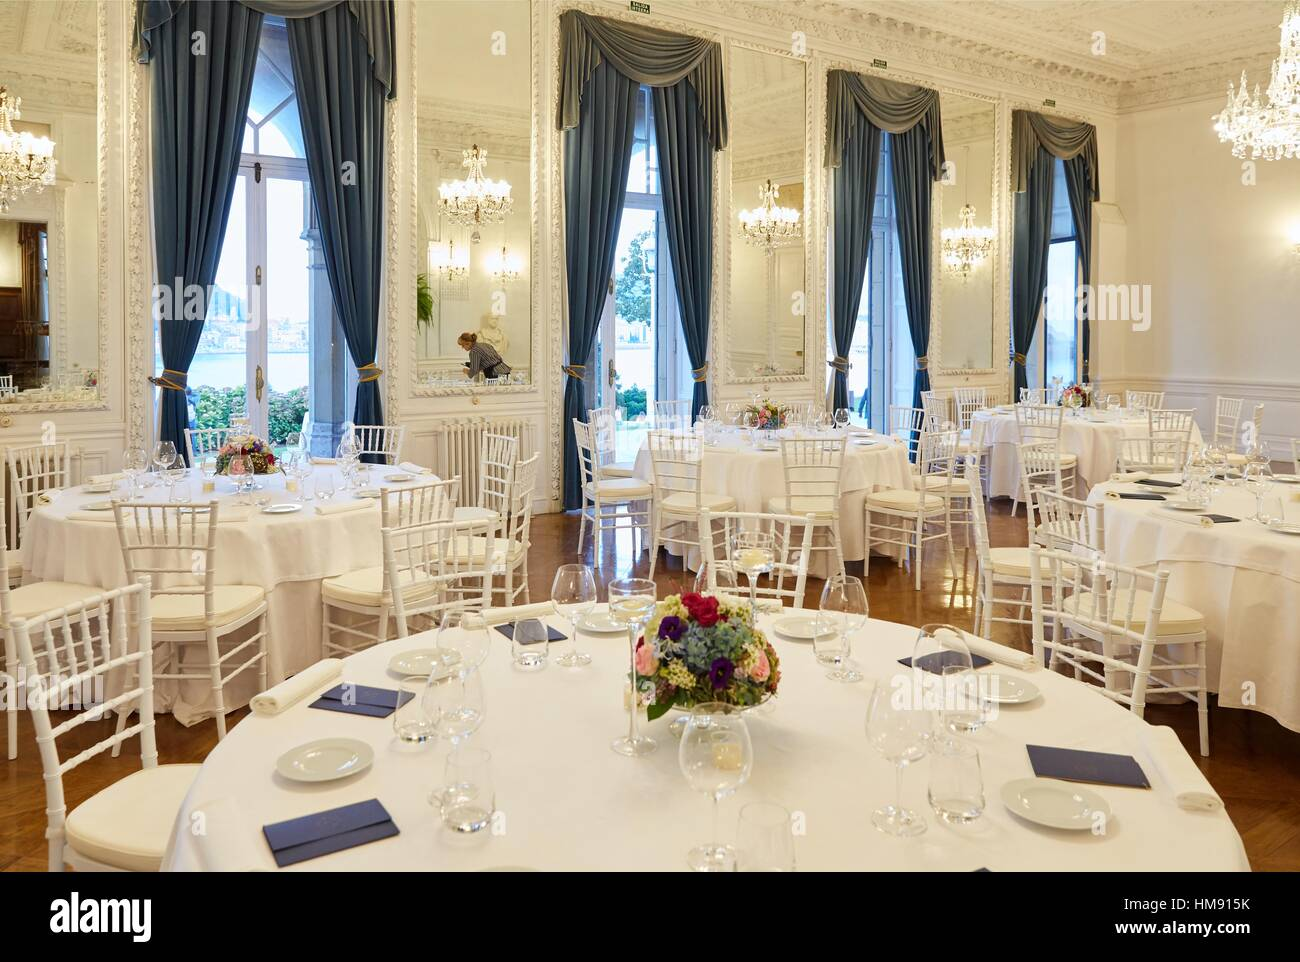 Preparation of tables, restaurant, Event at the Miramar Palace, Donostia, San Sebastian, Gipuzkoa, Basque Country, - Stock Image